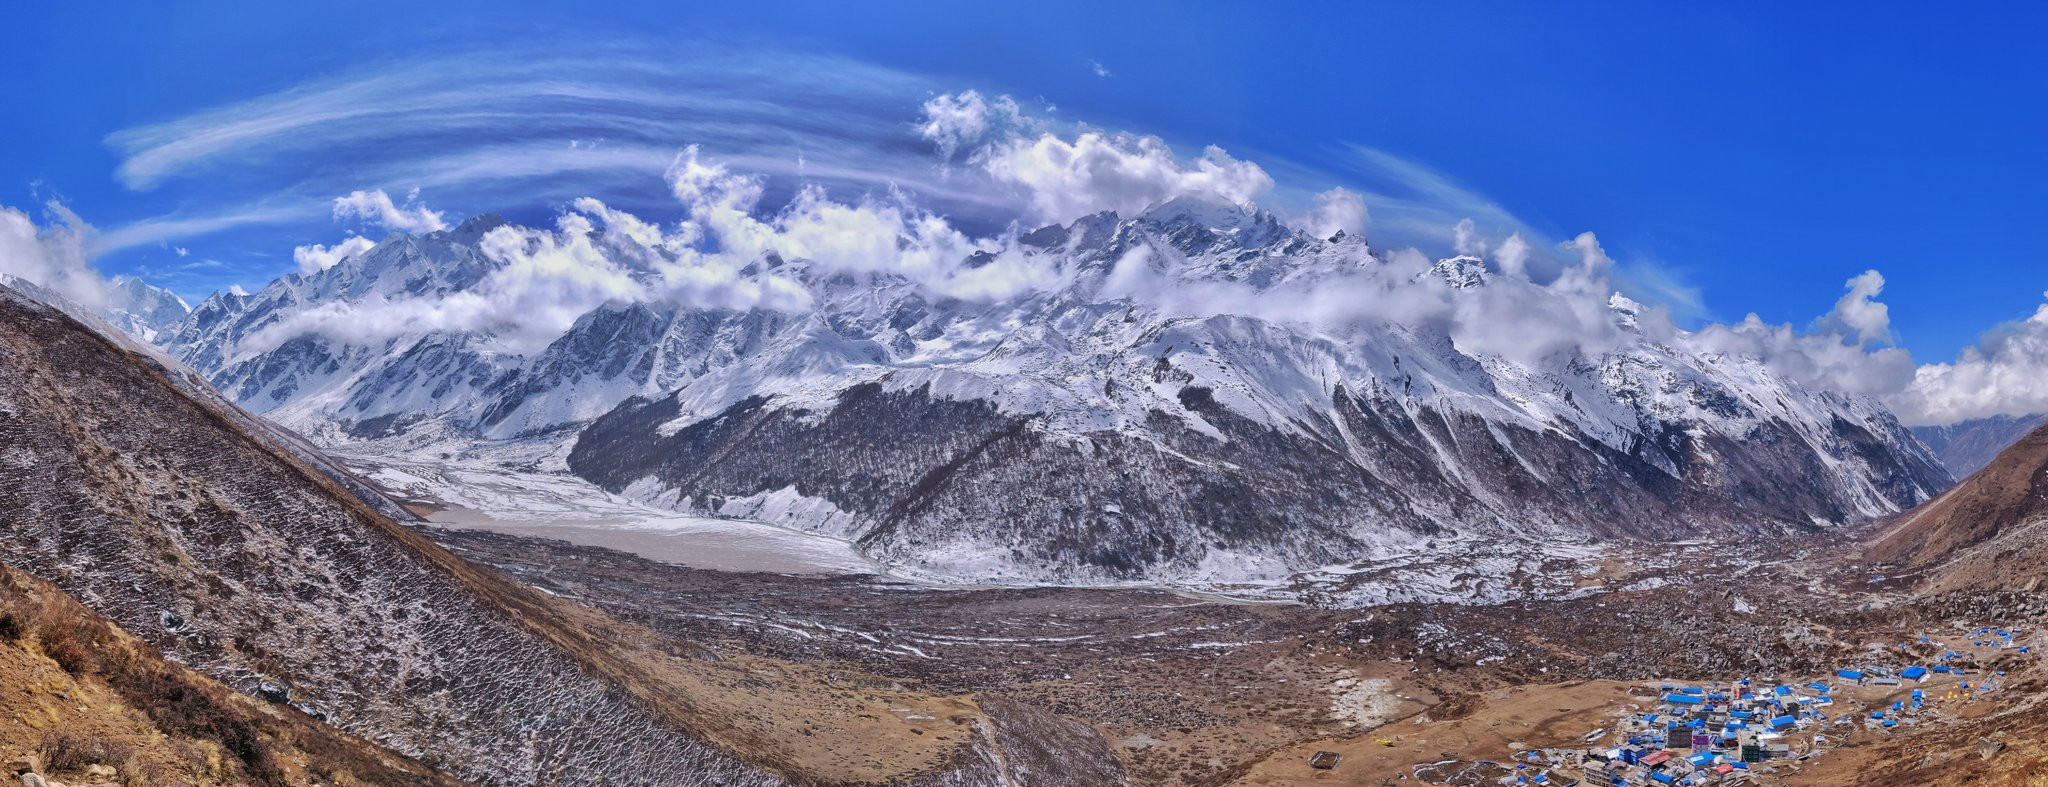 mountain view from Langtang